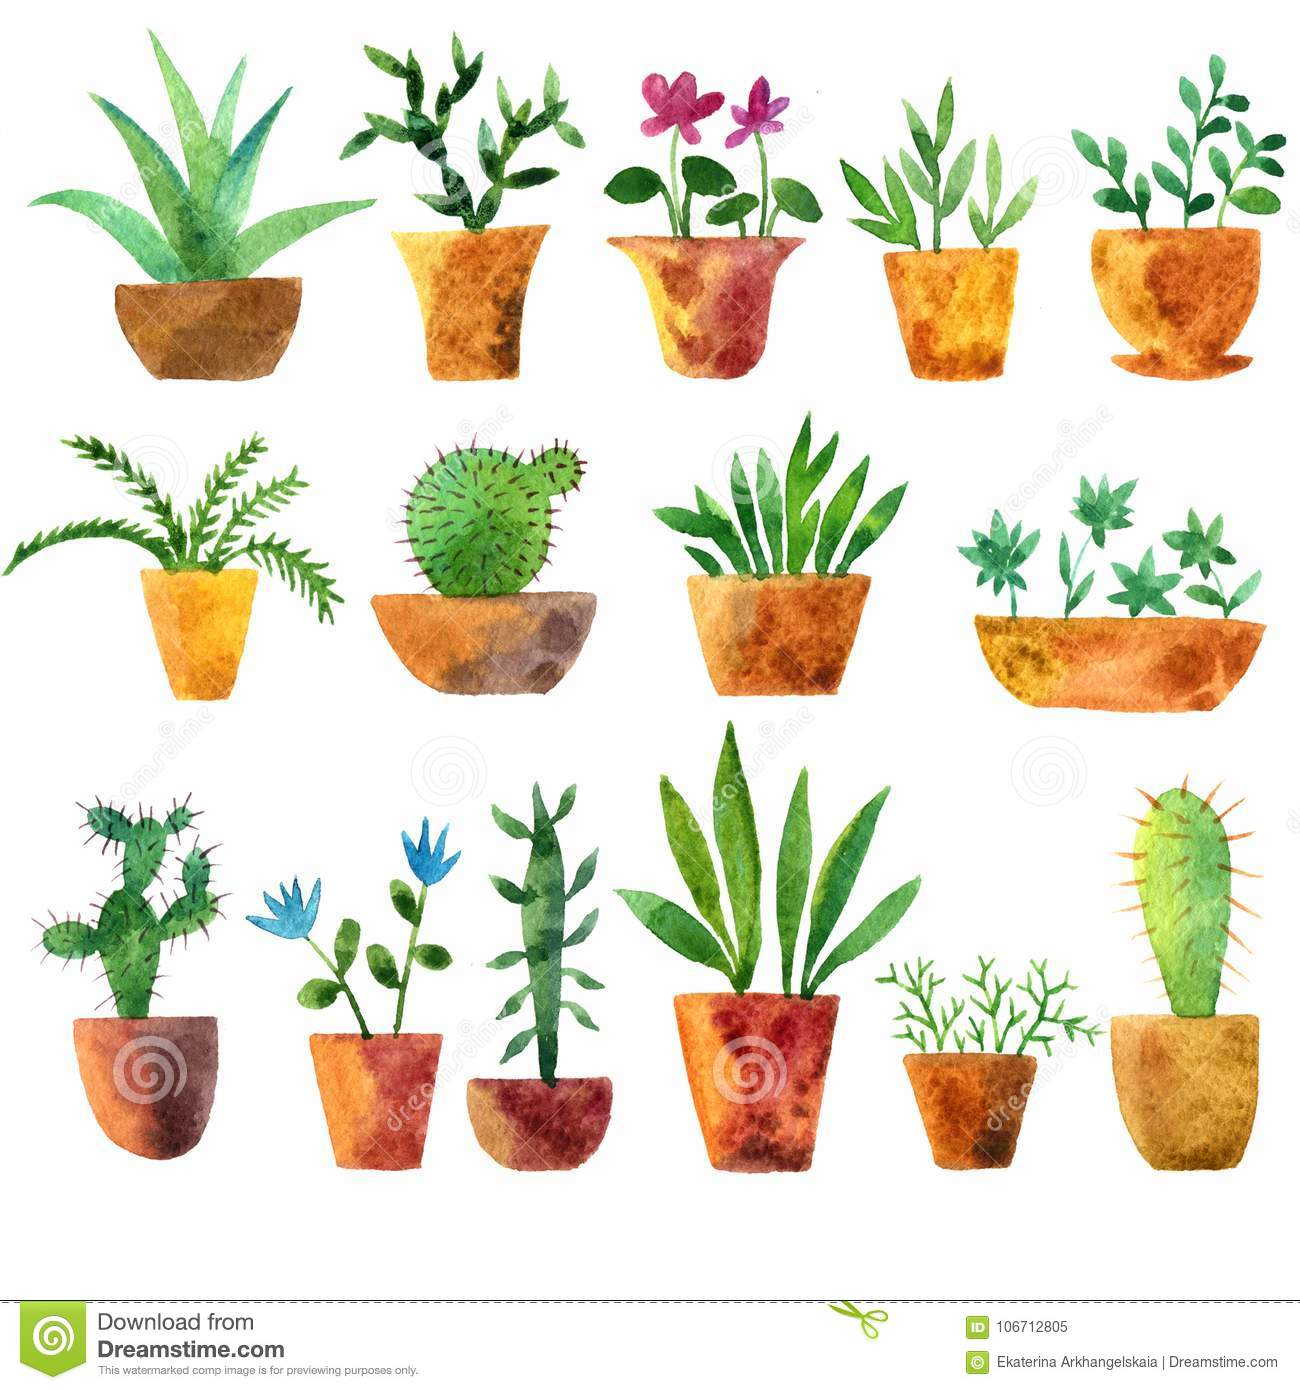 Watercolor Drawing Home Plants Stock Illustration Illustration Of Design Garden 106712805